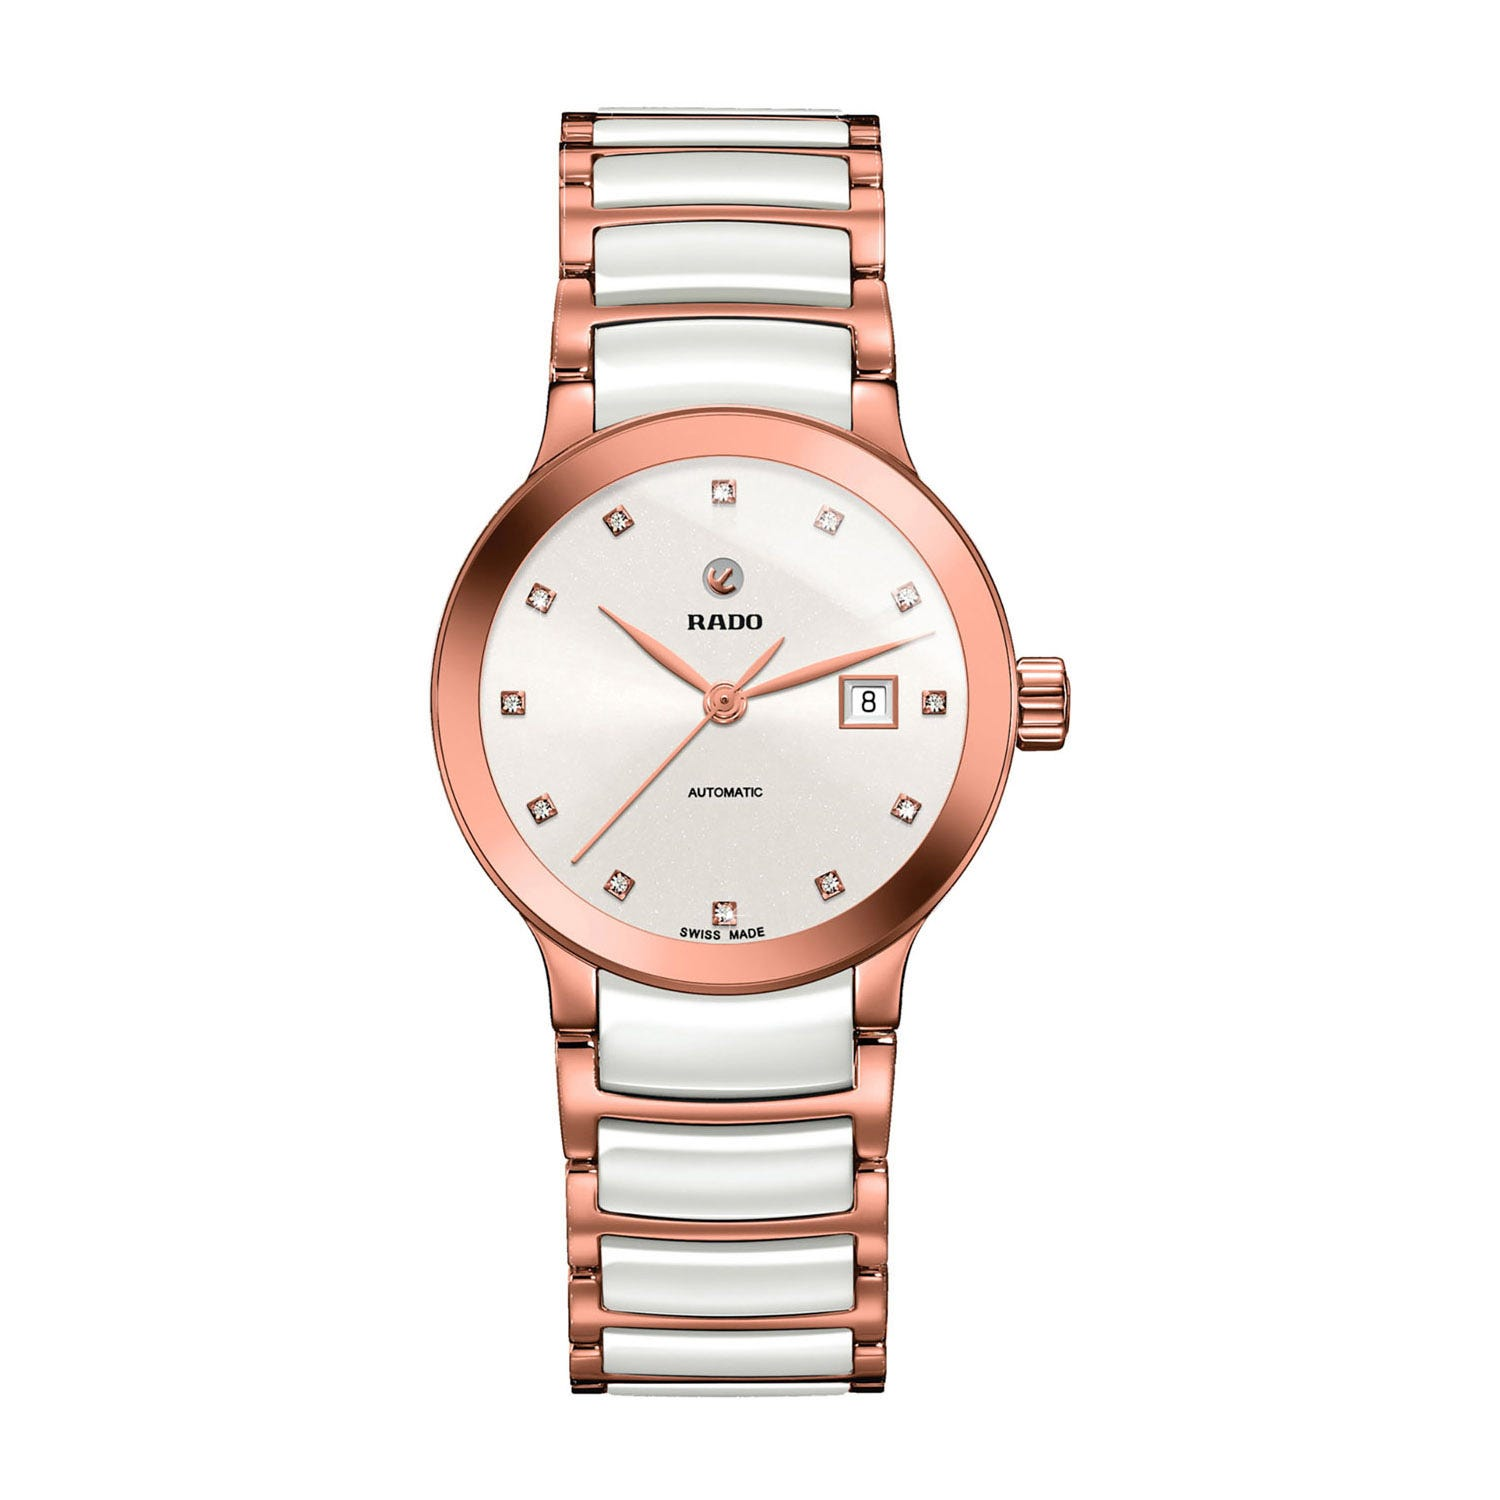 Rado Centrix ladies' automatic diamond-set rose gold-tone and white ceramic bracelet watch